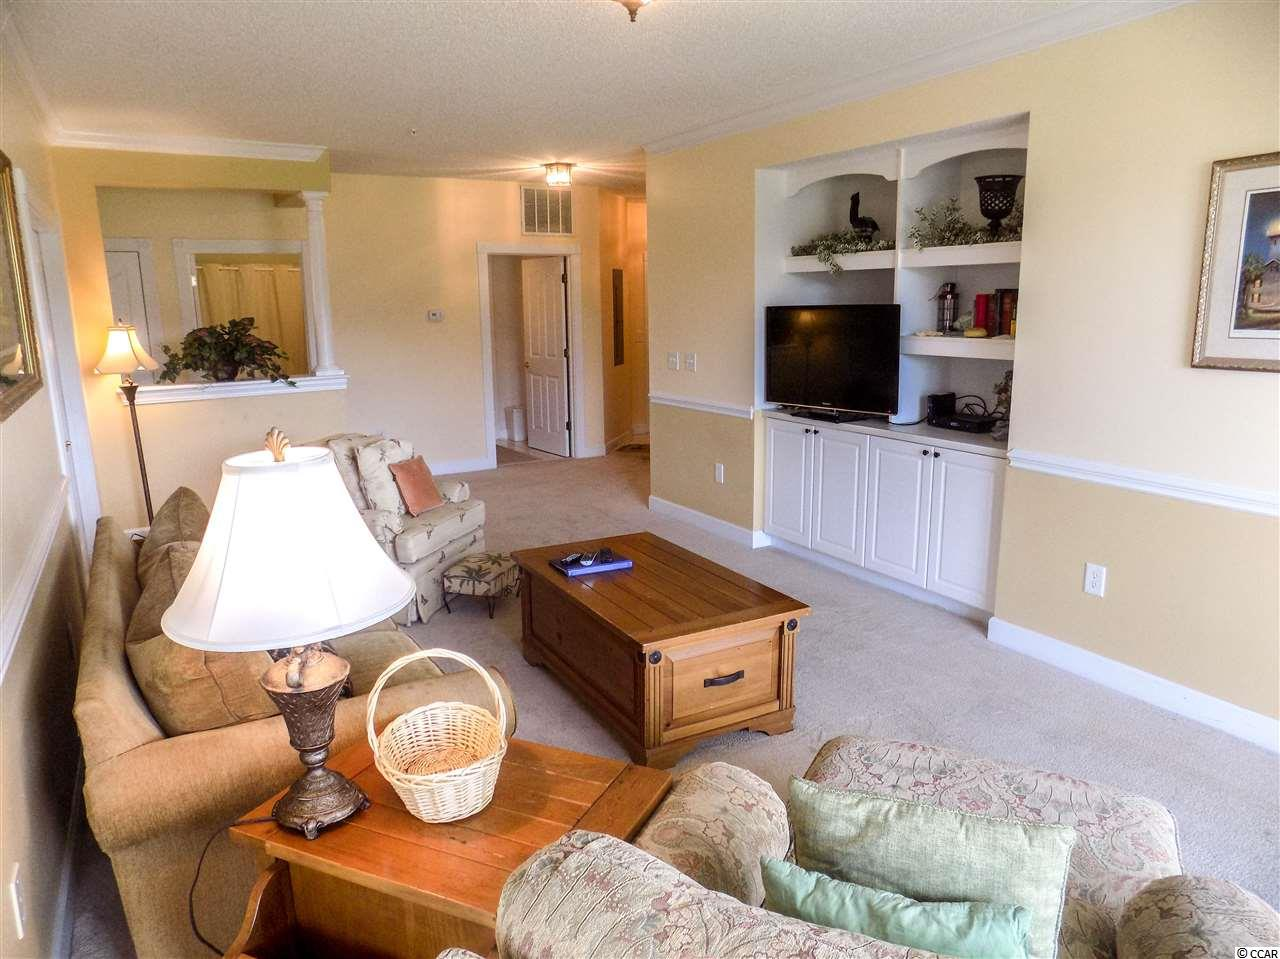 Harbour Cove at Barefoot Resort condo for sale in North Myrtle Beach, SC